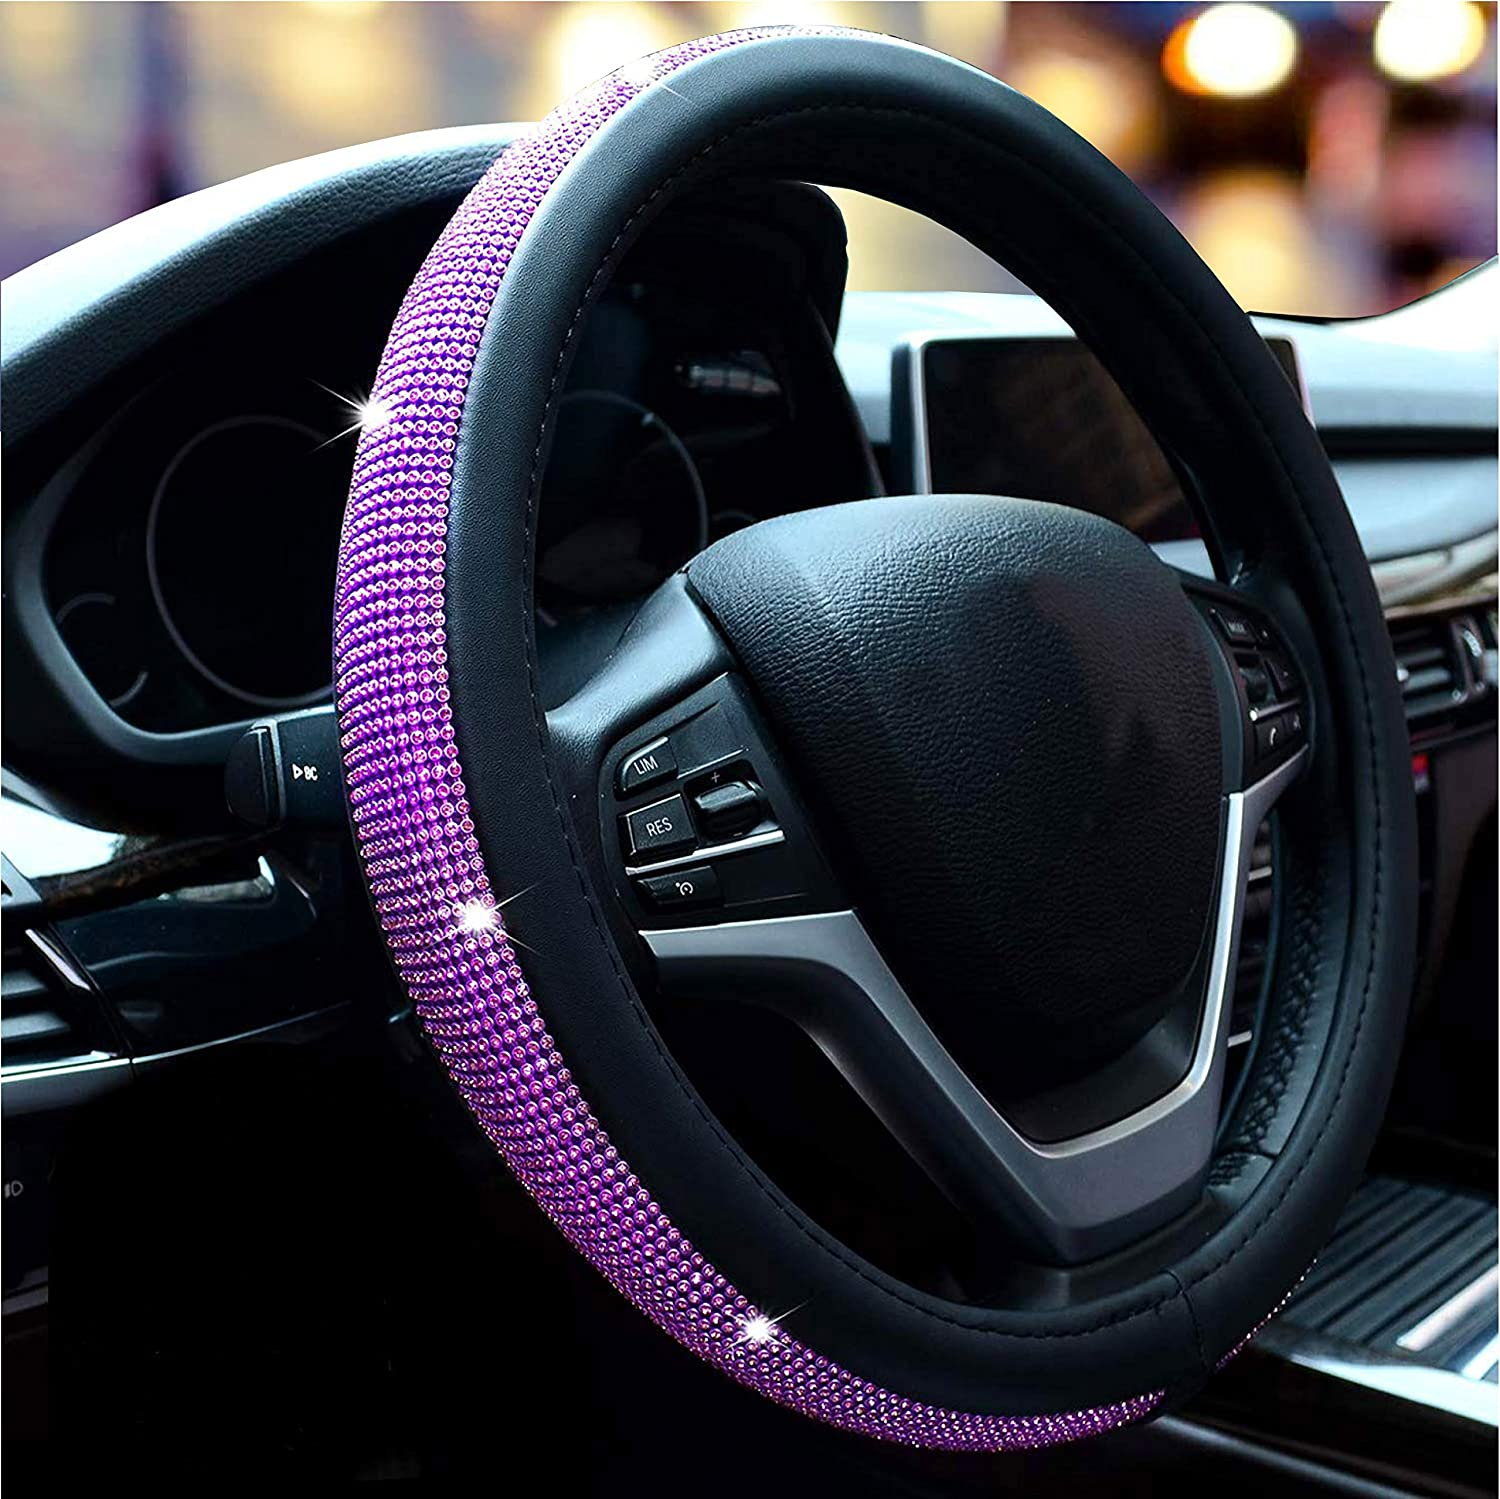 New Diamond Leather Purple Steering Wheel Cover with Bling Bling Crystal Rhinestones Universal Fit 15 Inch Anti-Slip Wheel Protector for Women Girls Purple